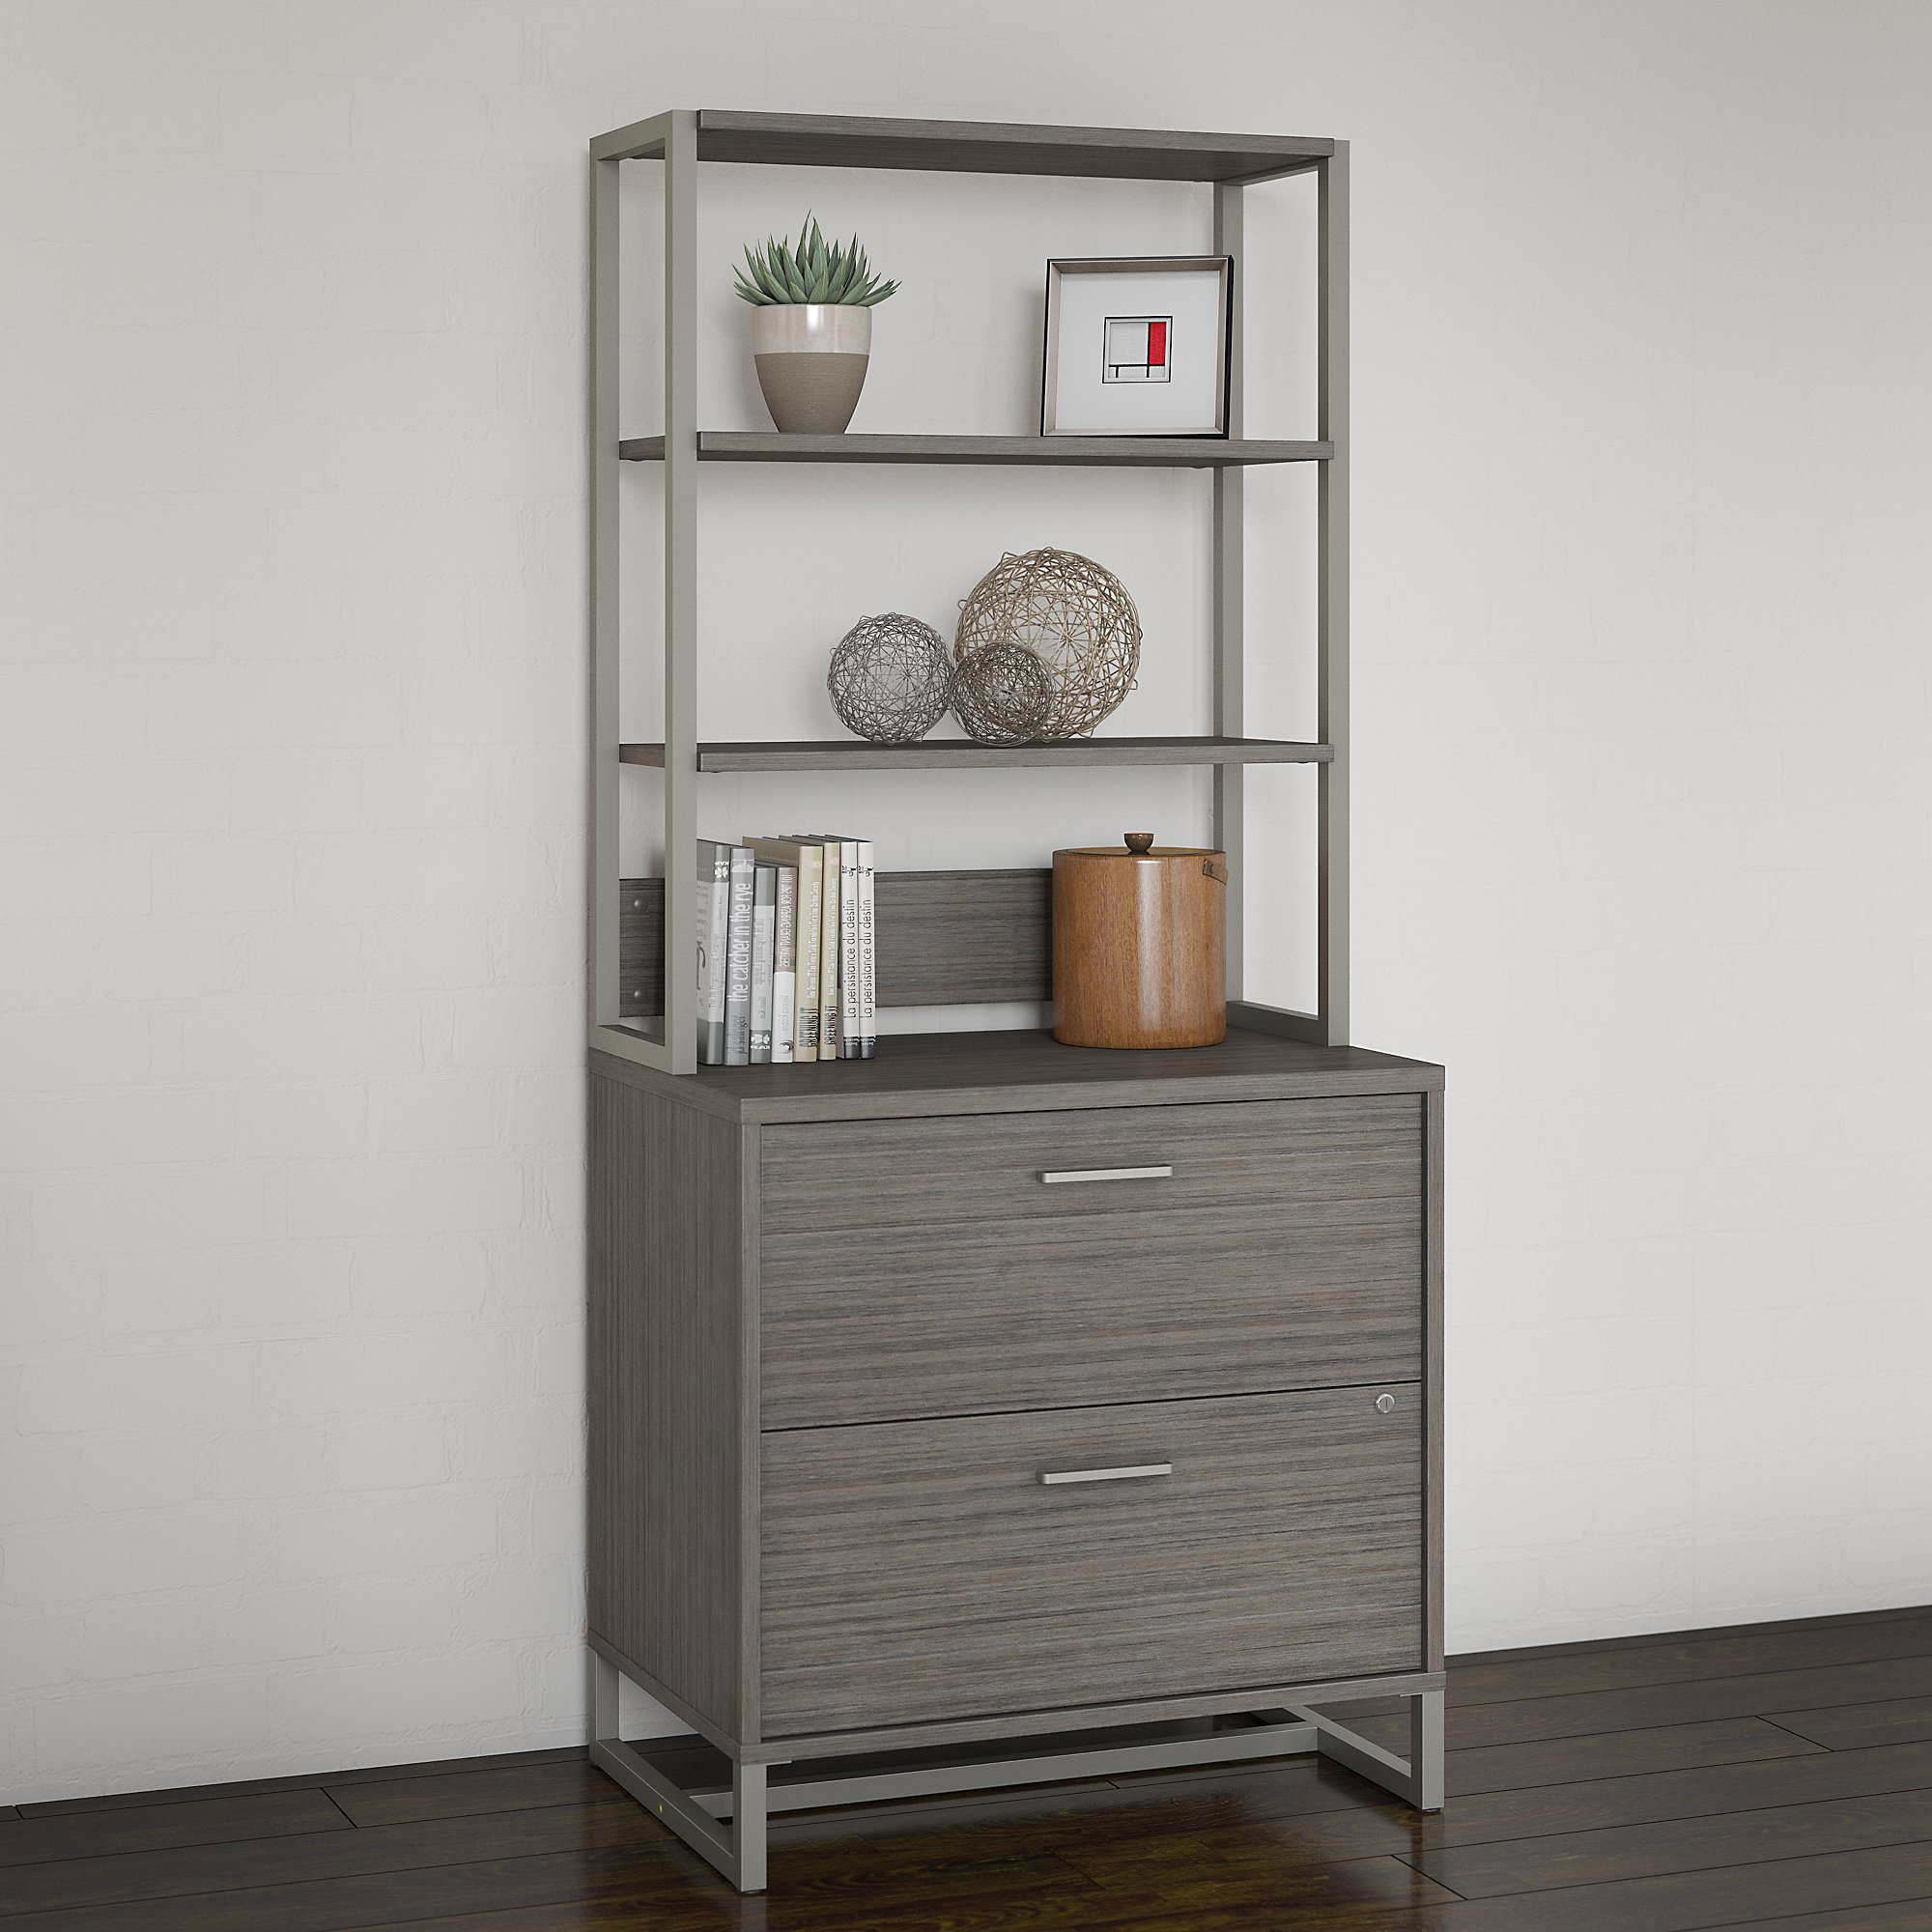 office by kathy ireland wall cabinet in cocoa